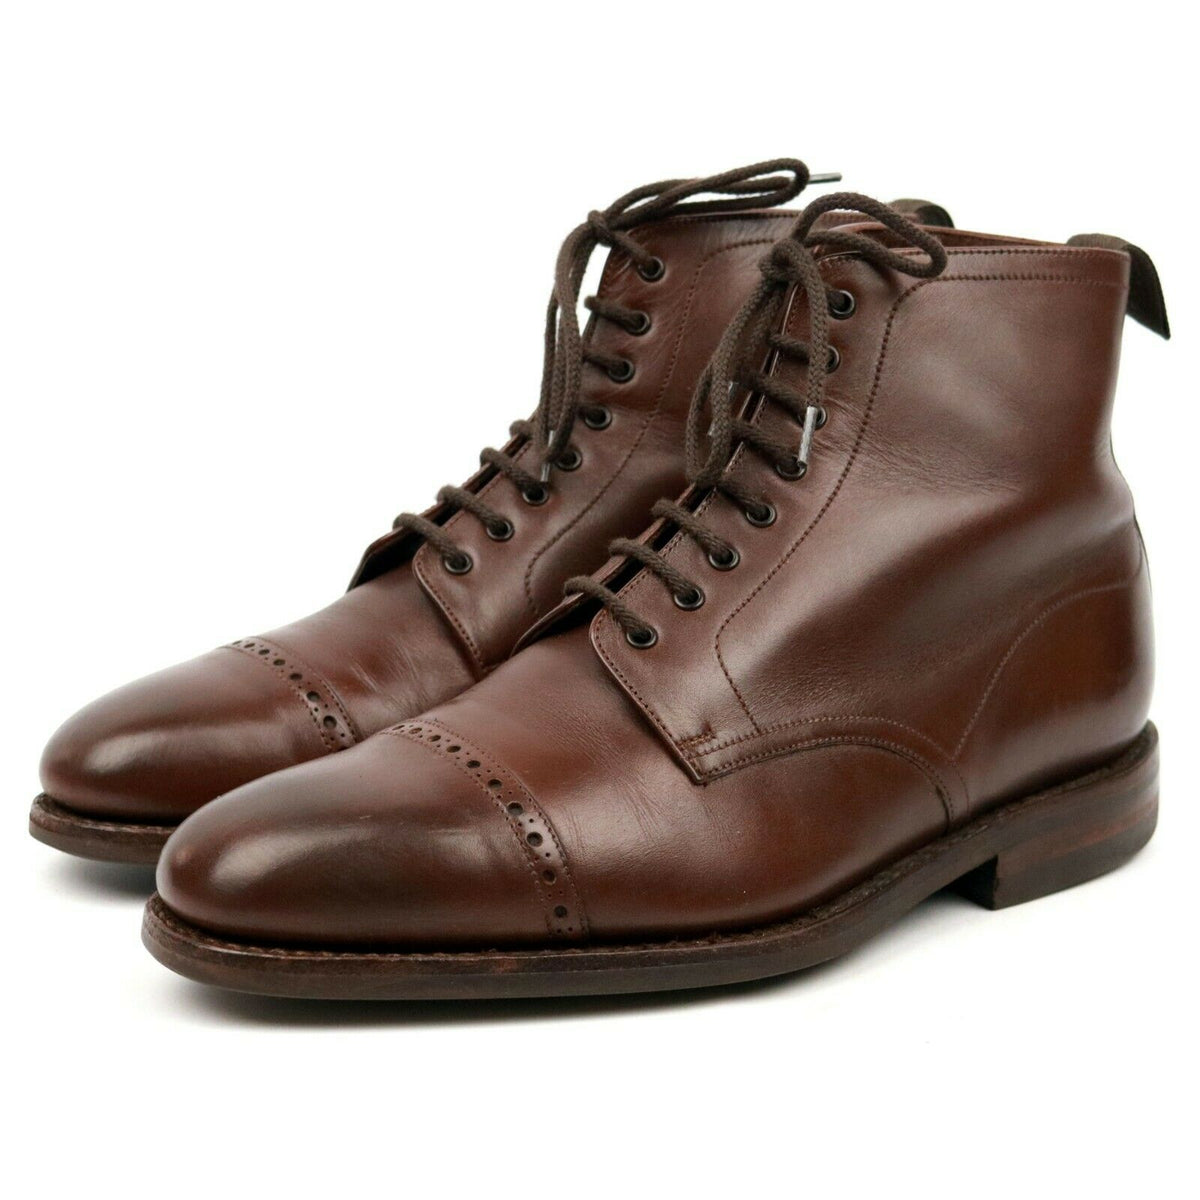 Loake 1880 'Hyde' Brown Leather Cap Toe Boots UK 7 F